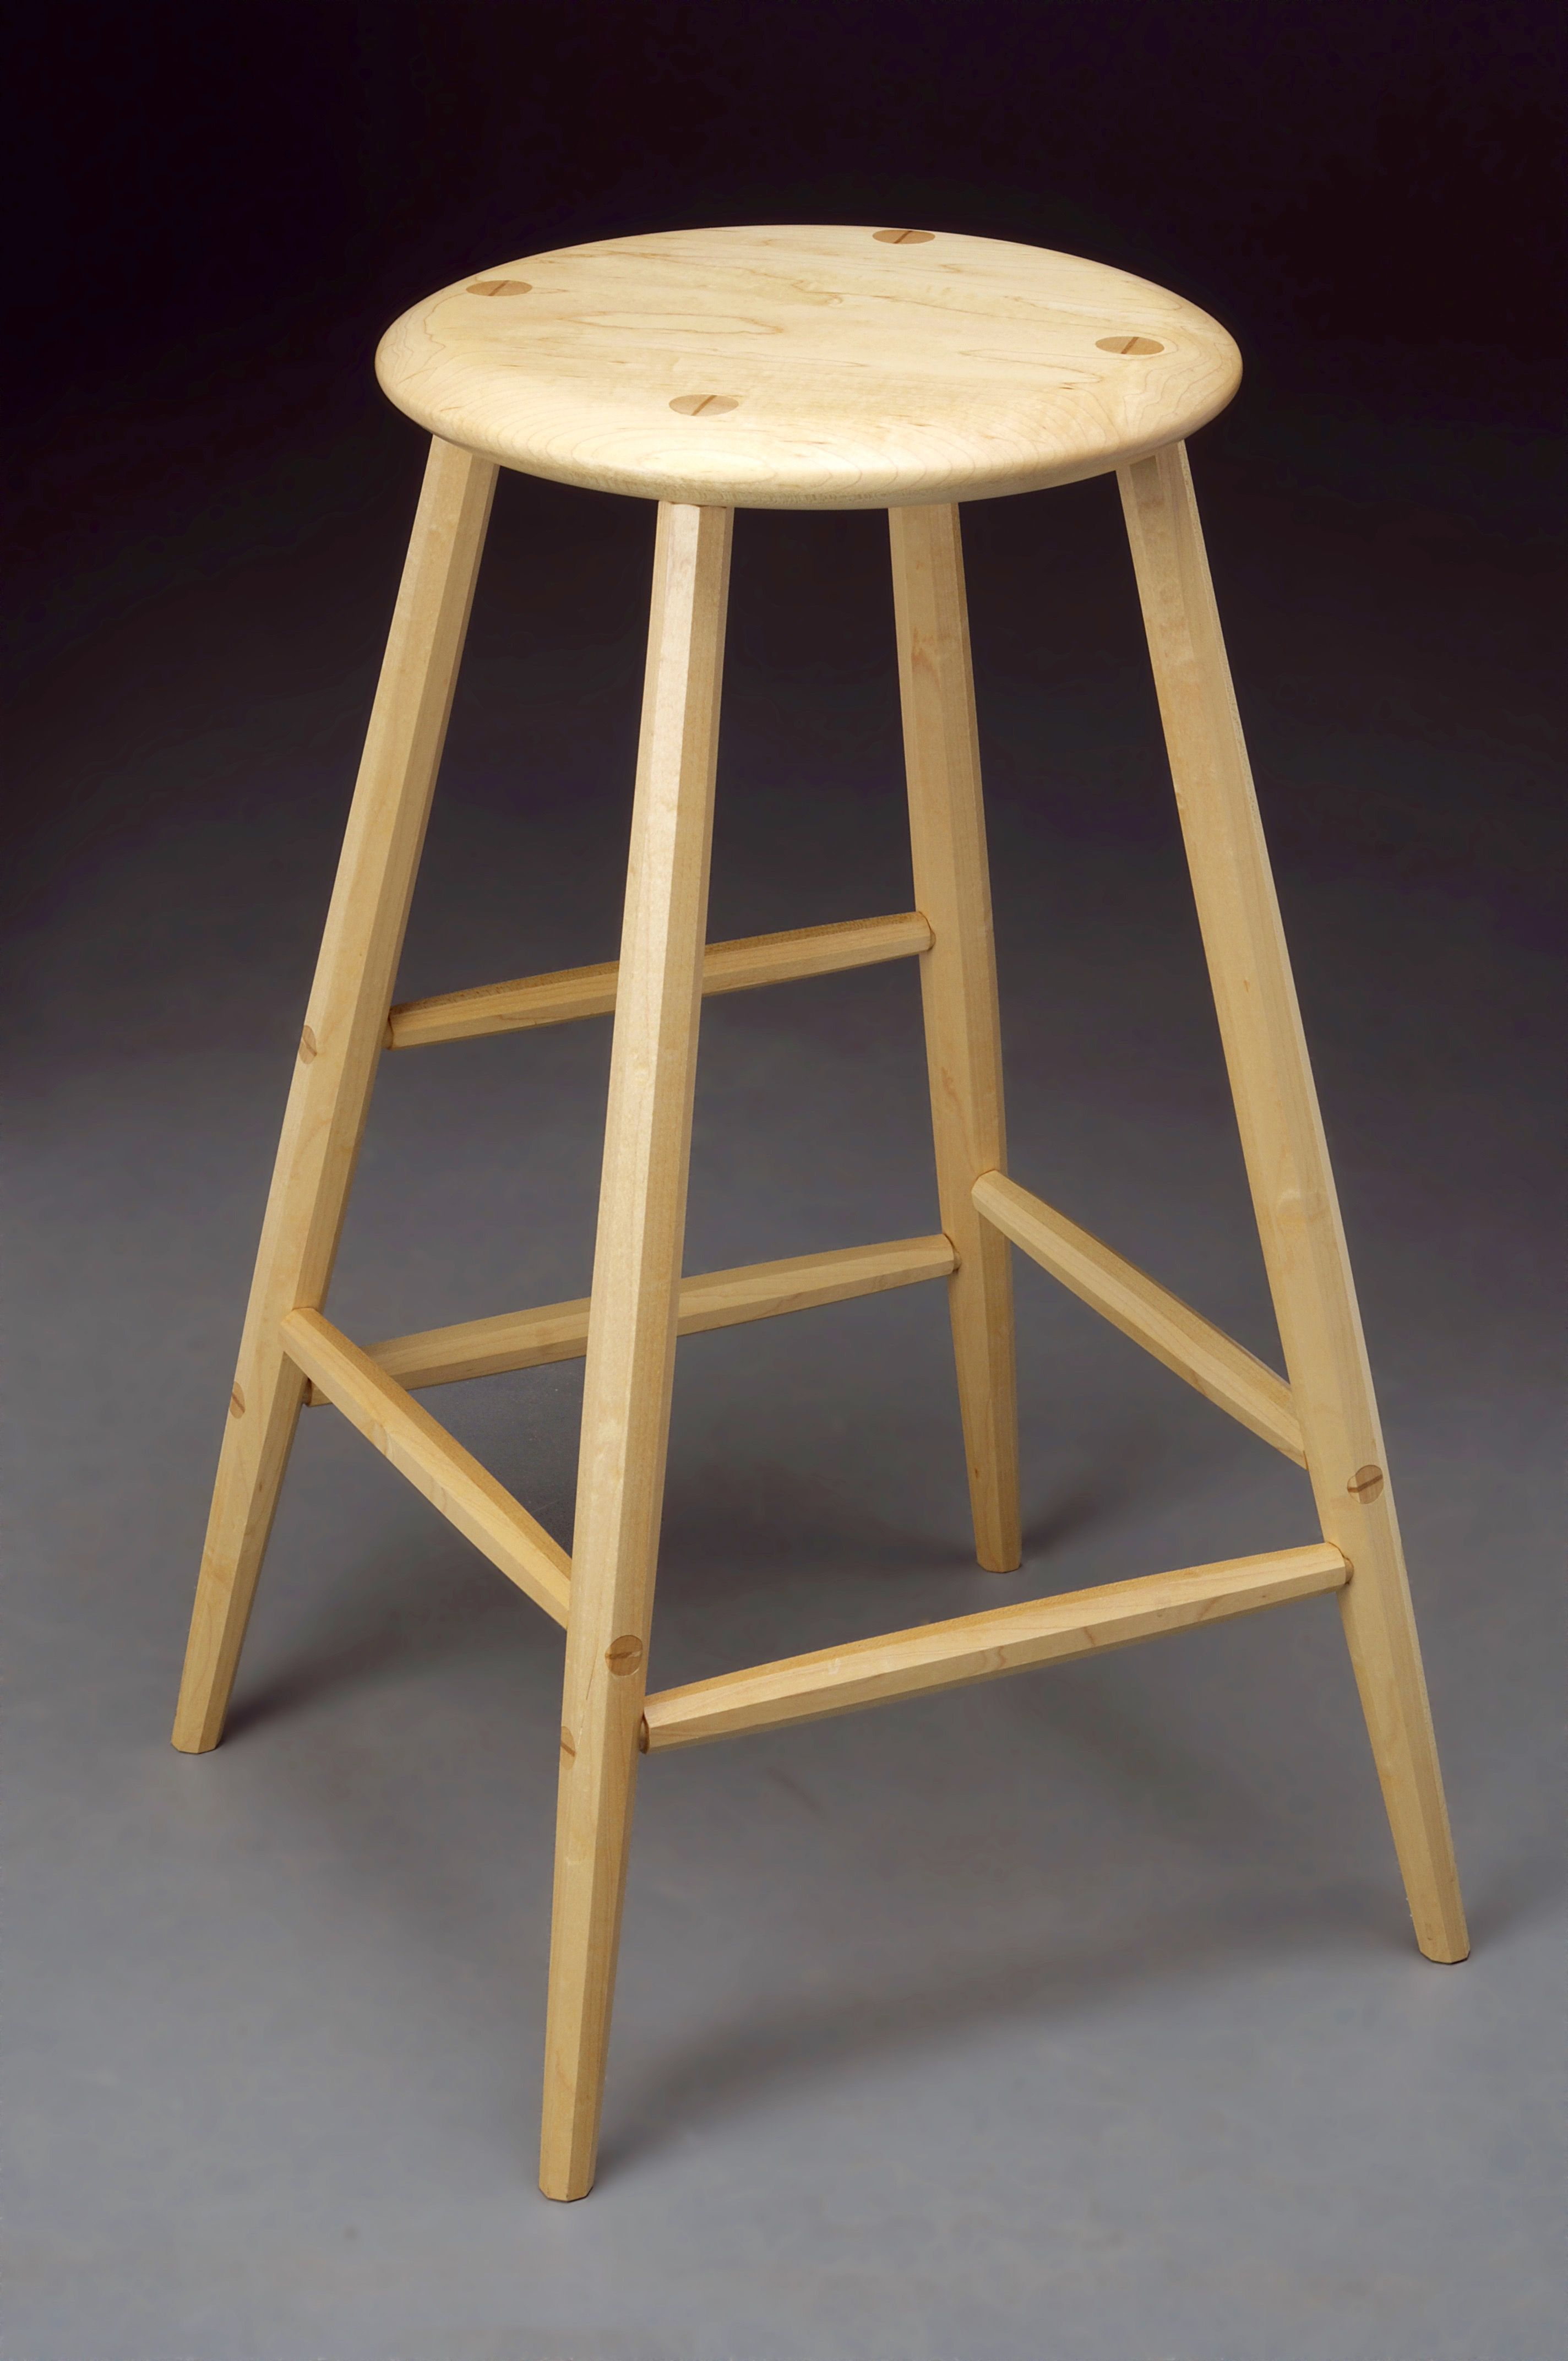 Enjoyable Four Legged Stool All Sugar Maple With Faceted Legs In 2019 Ibusinesslaw Wood Chair Design Ideas Ibusinesslaworg